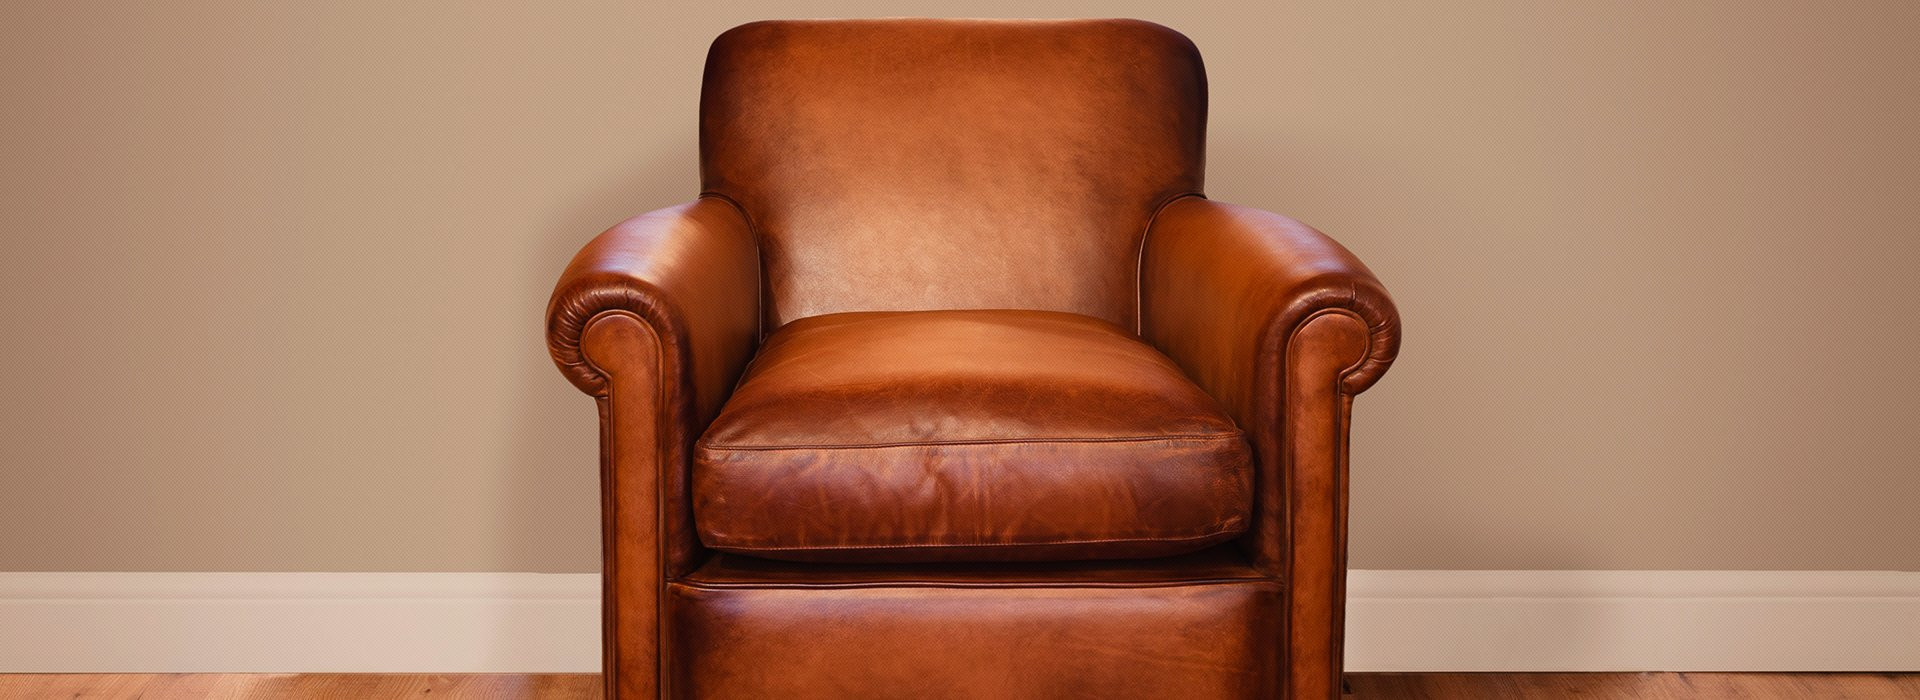 A brown leather armchair